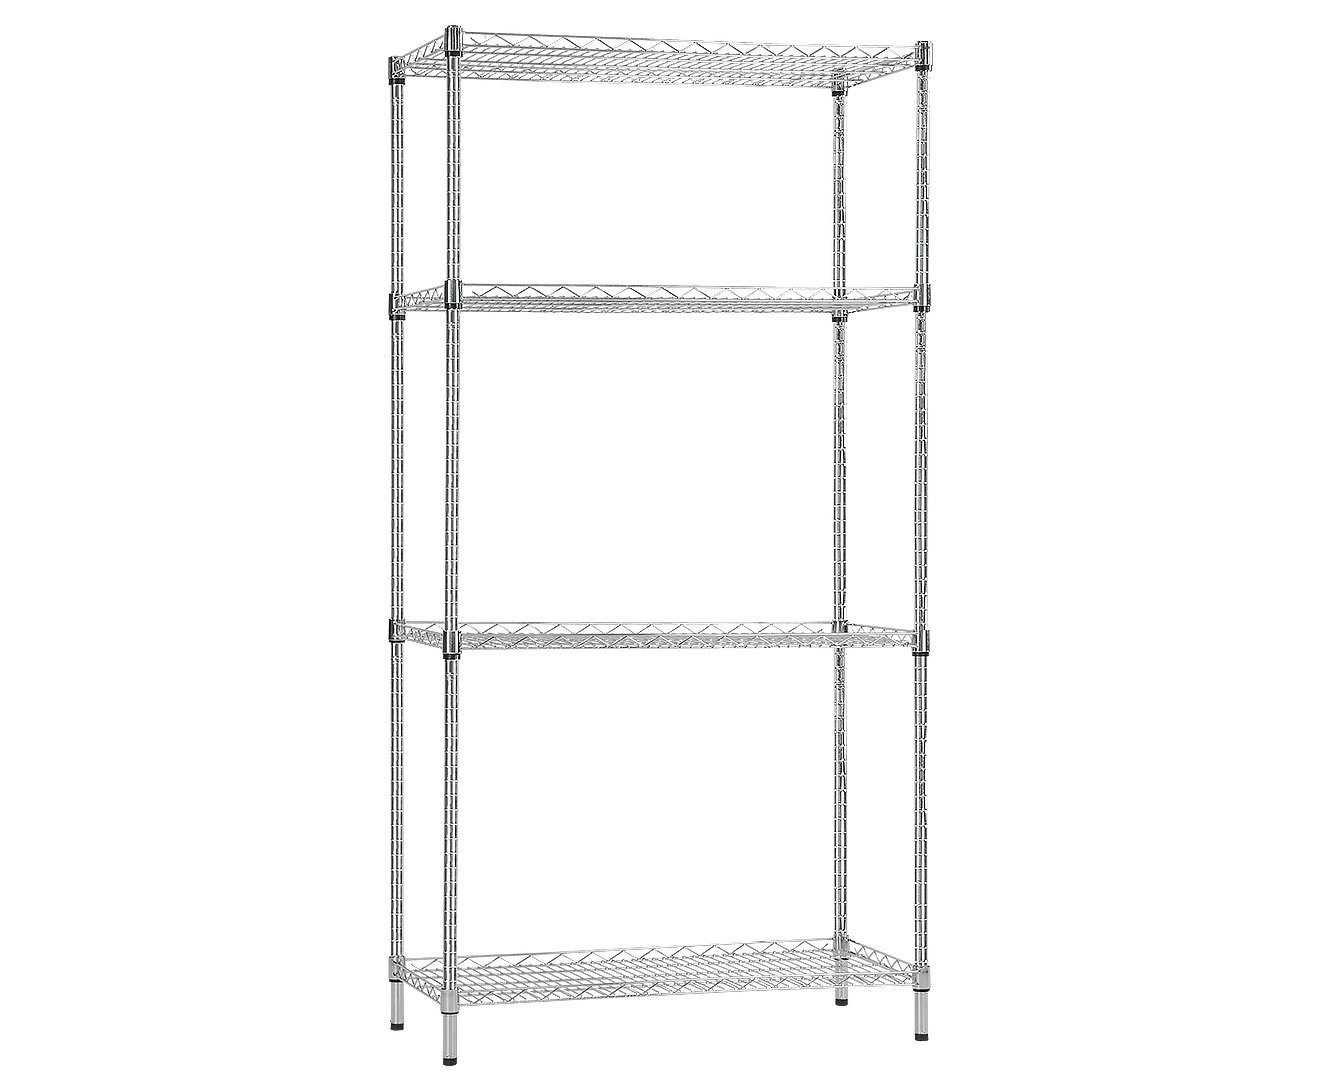 Syncrosteel Chrome Wire Shelving Storage Unit 900x450mm - 1.8m High - $263.9